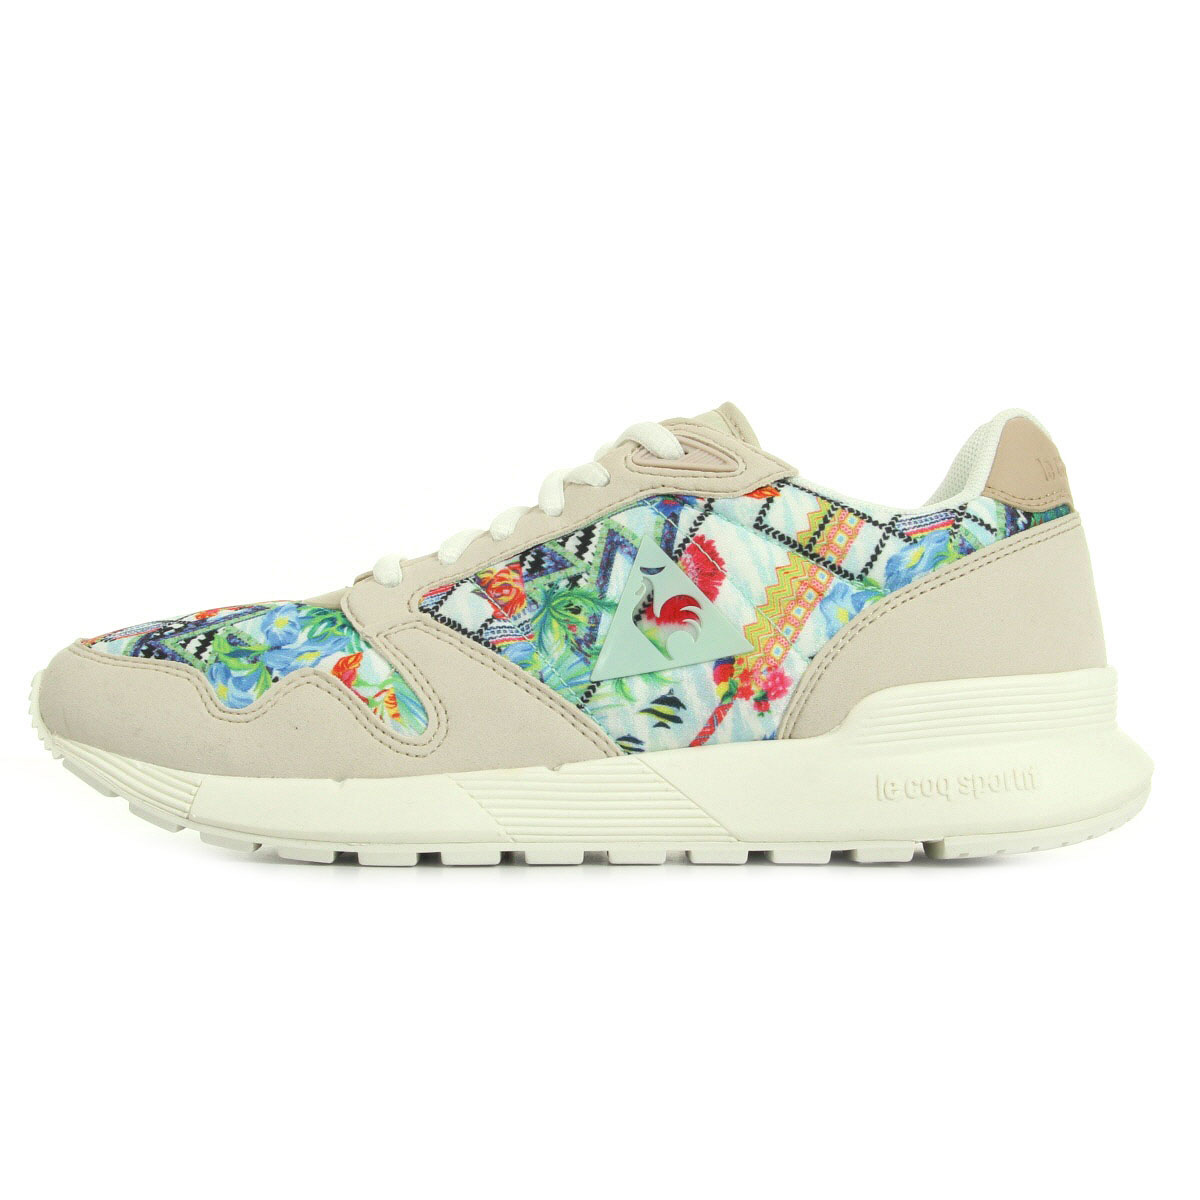 le coq sportif omega x w garden fusion 1710240 chaussures homme homme. Black Bedroom Furniture Sets. Home Design Ideas